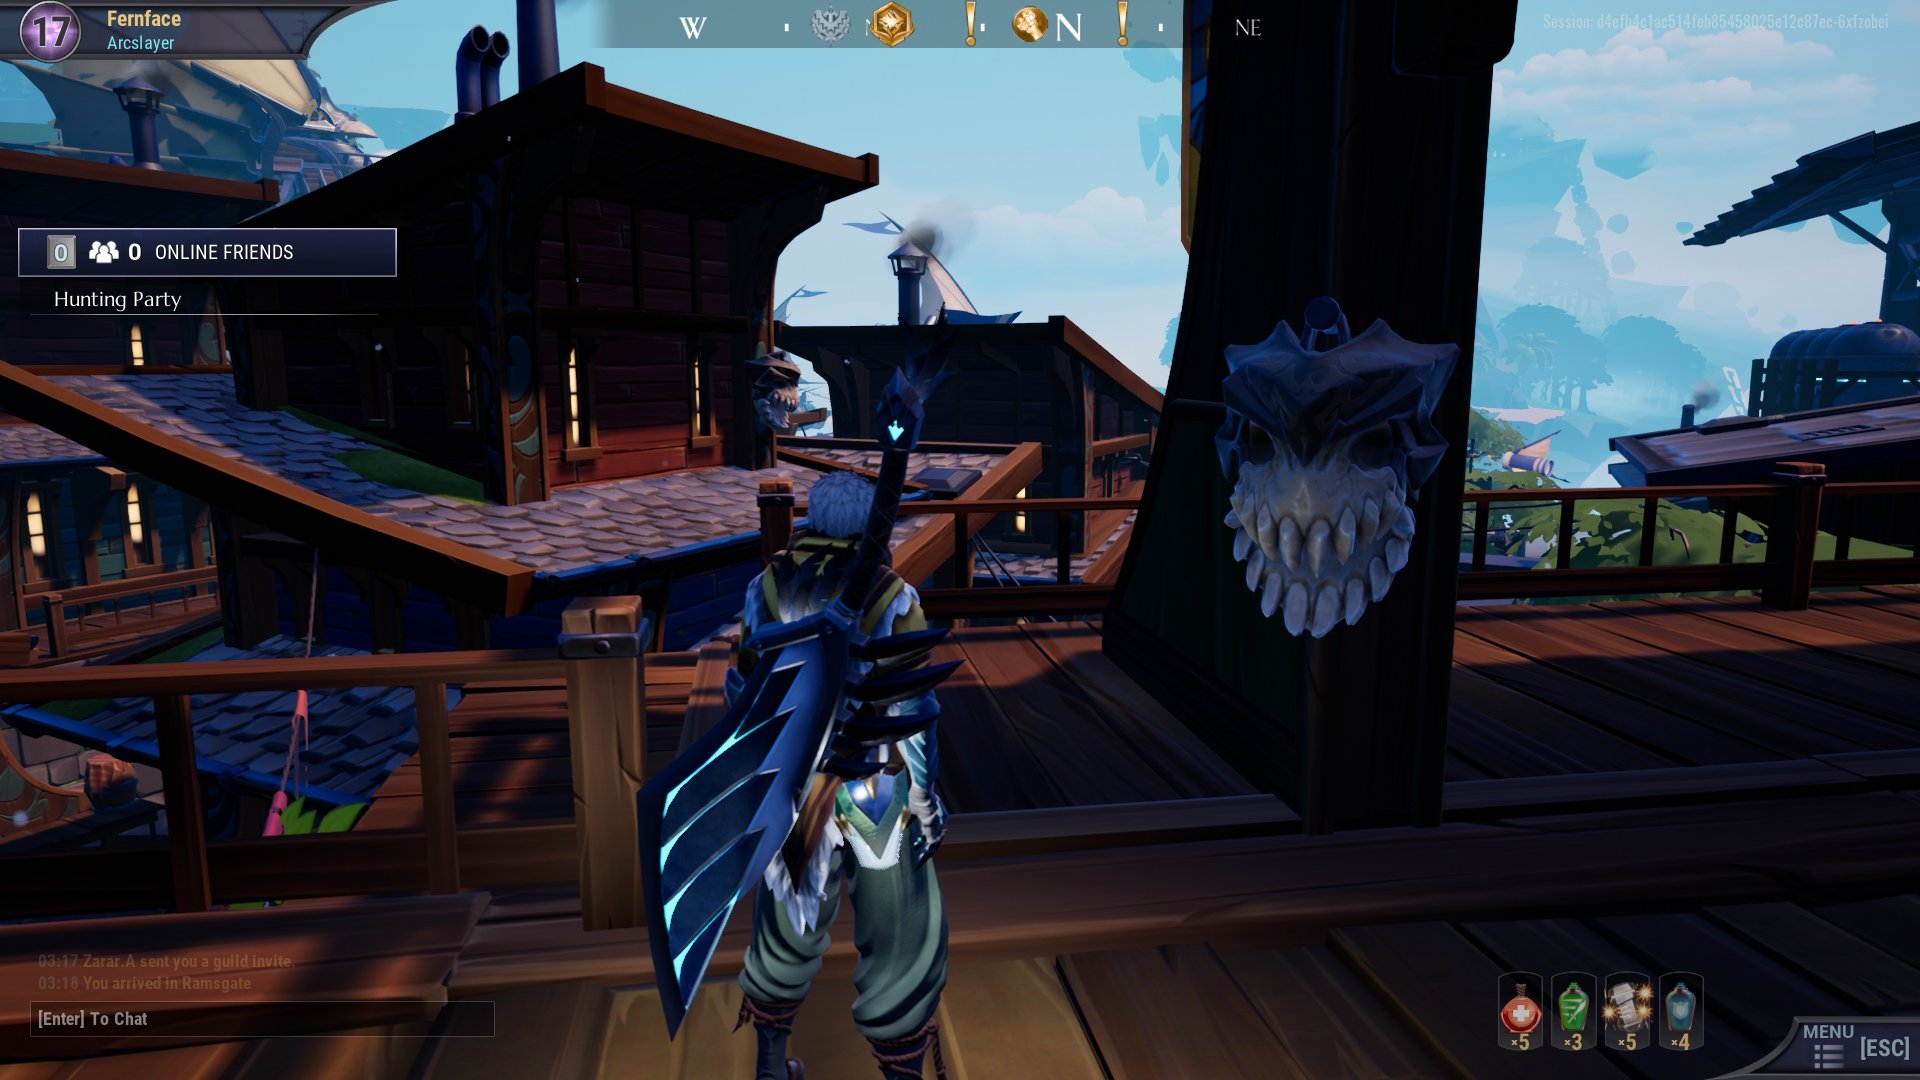 Dread Skull 17 - All daily dread skull locations in Dauntless